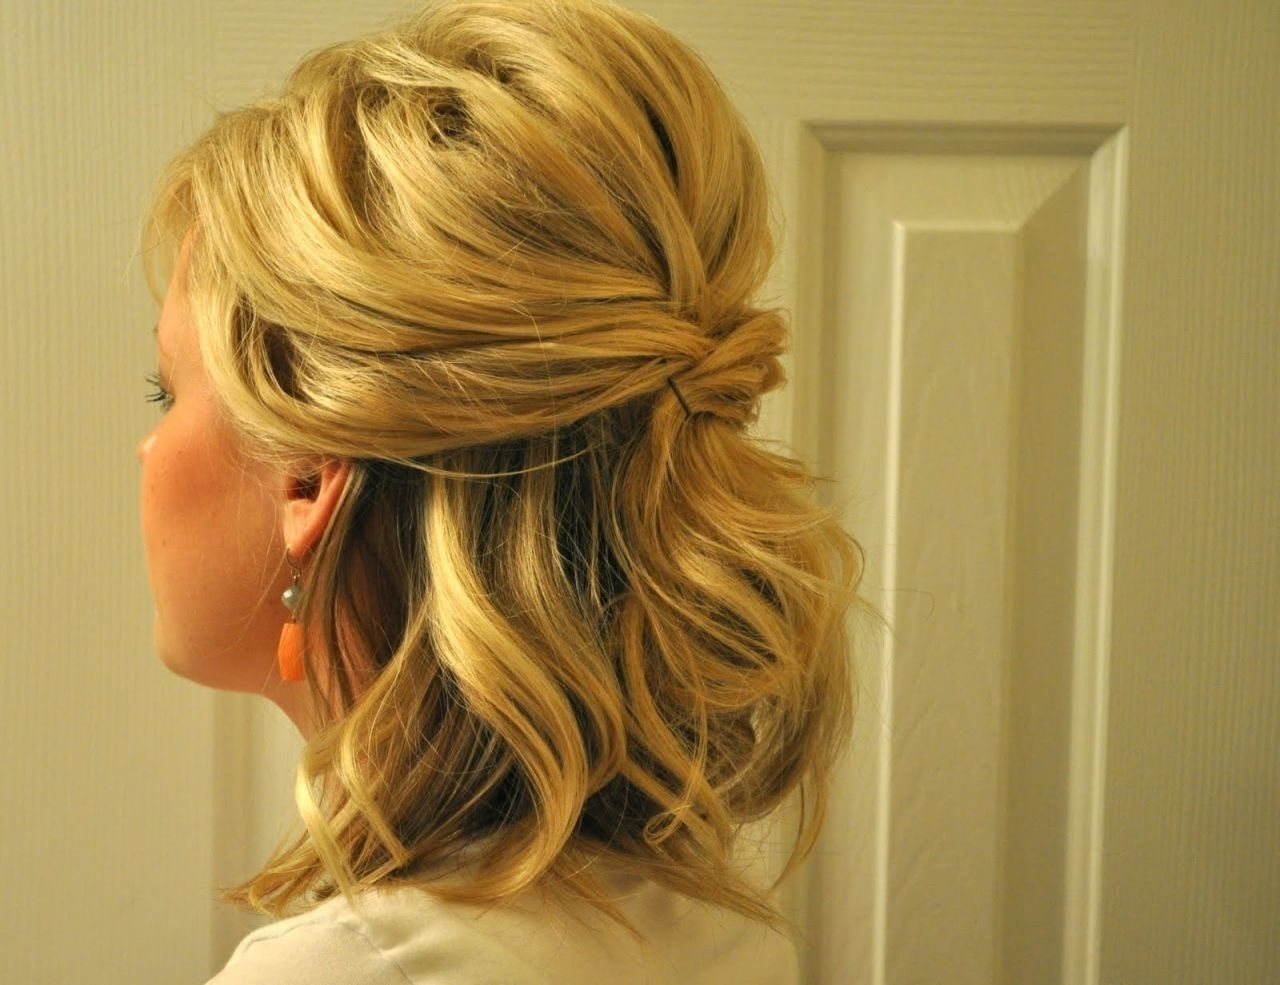 Updos For Medium Hair Half Up Half Down Half Up Half Down Wedding With Most Up To Date Wedding Hairstyles For Bridesmaids With Medium Length Hair (View 13 of 15)